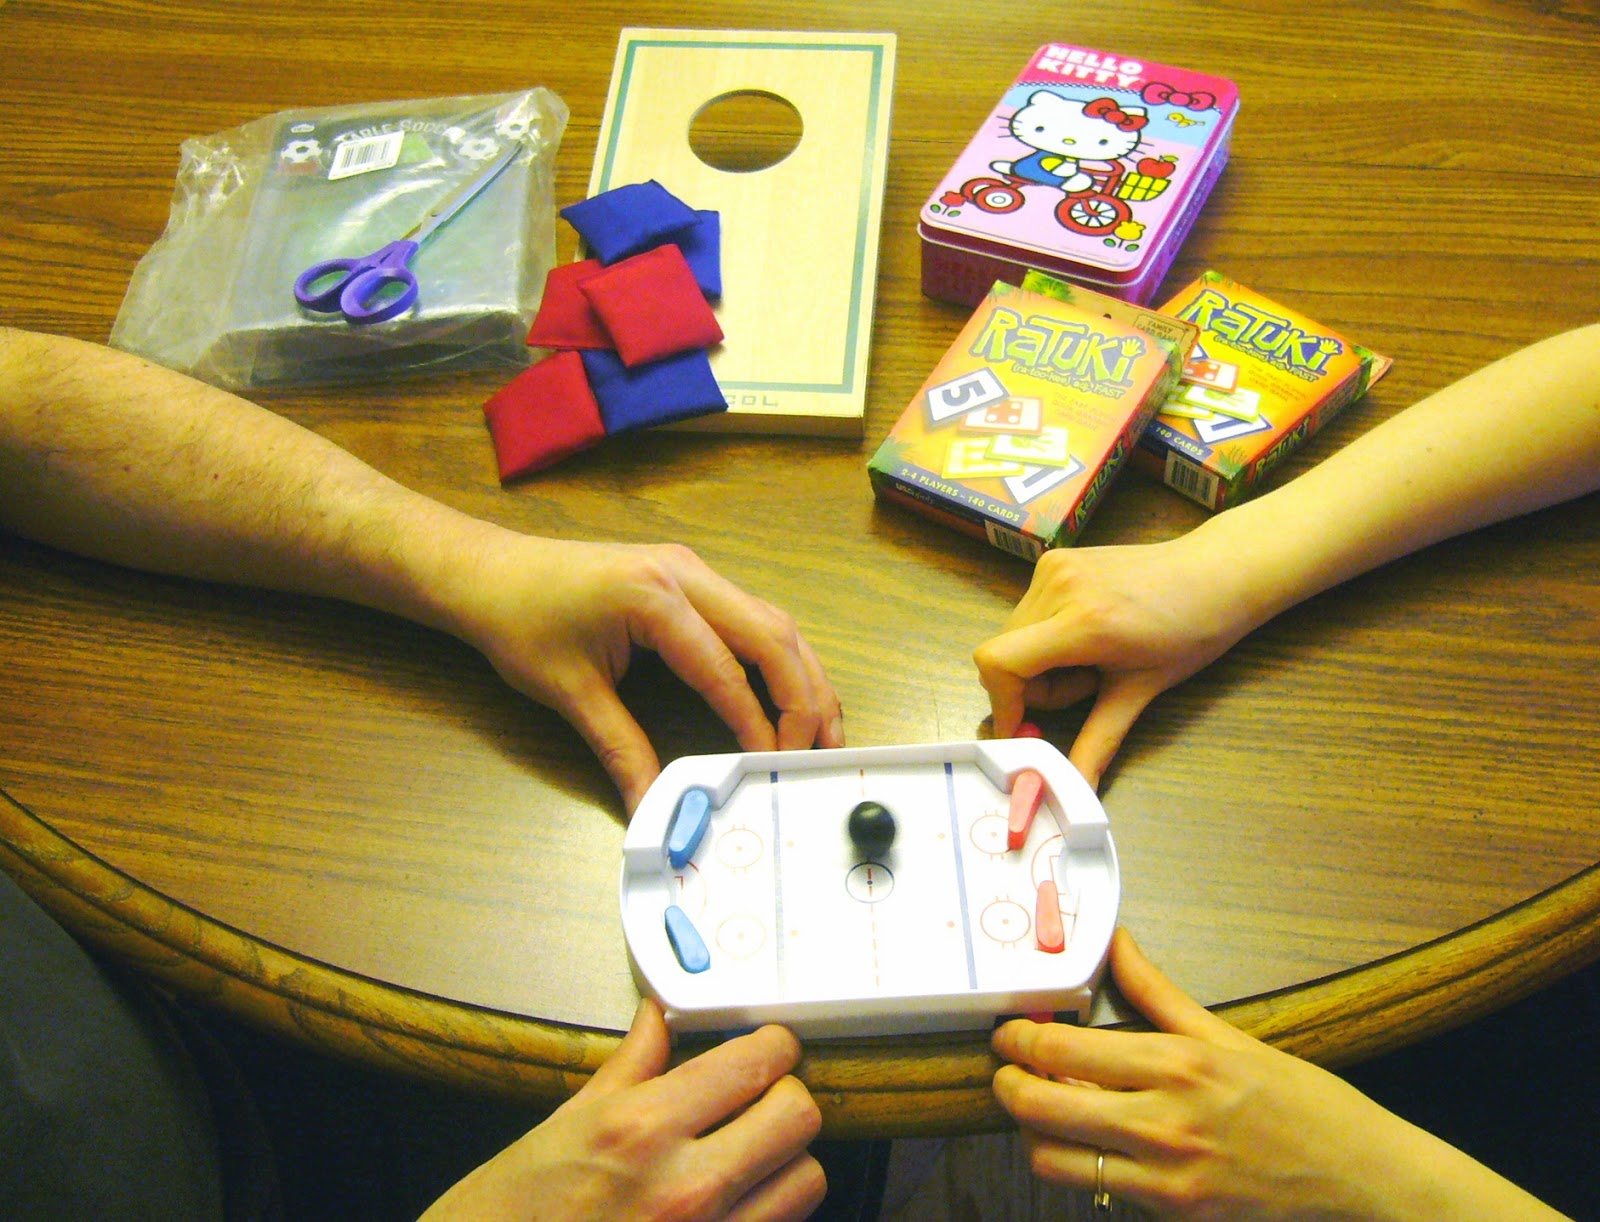 Game Testers for Operation Christmas Child gifts